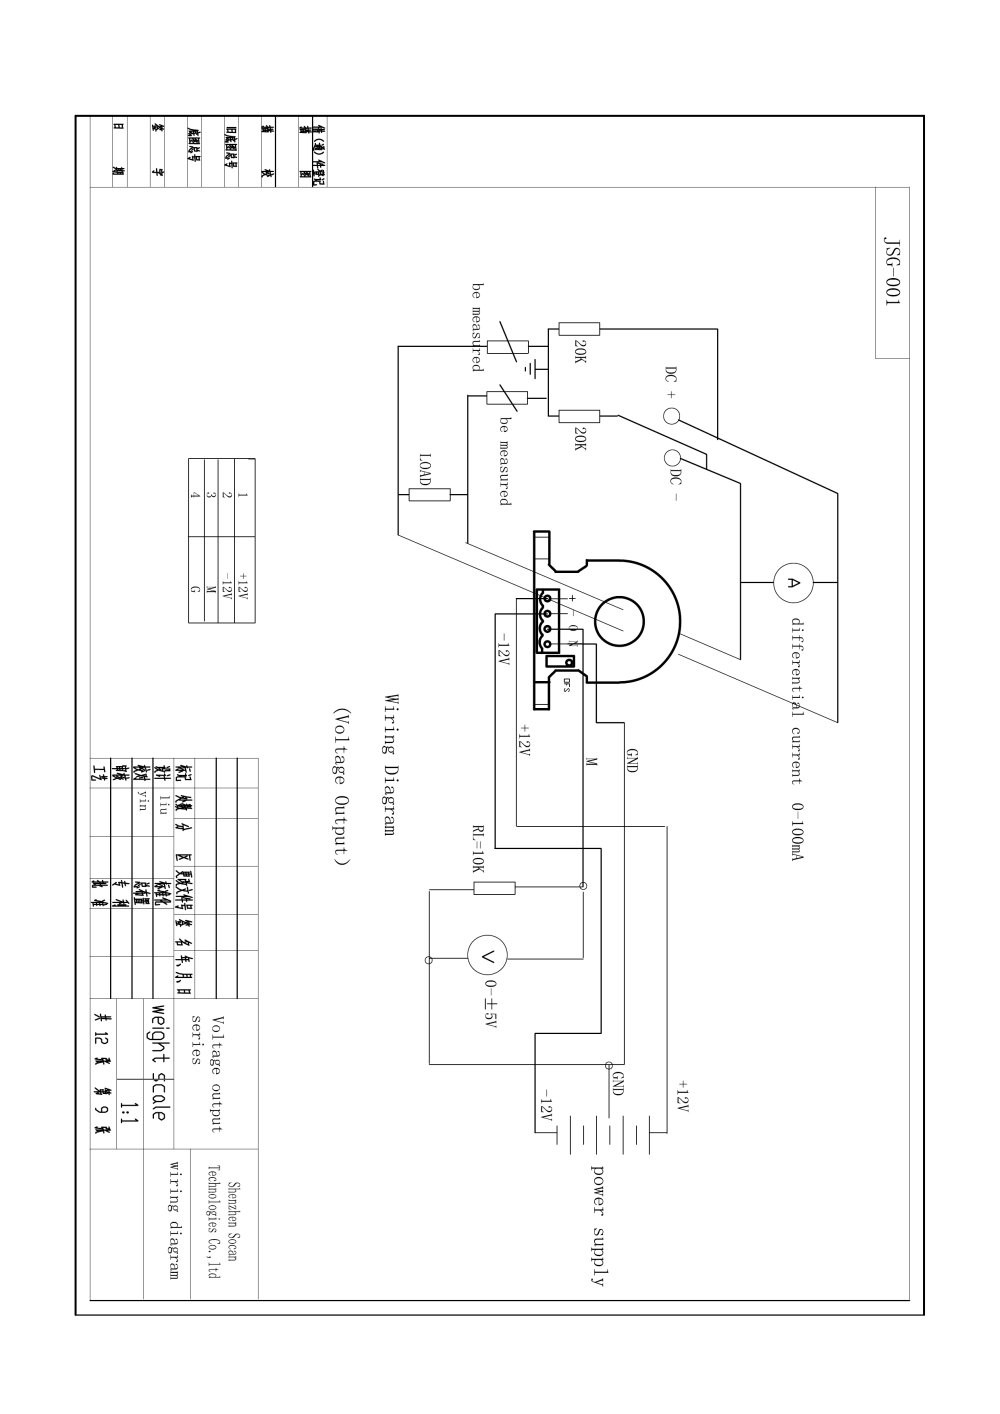 Slo Syn Stepper Motor Wiring Diagram New Image Winch Control Trend 30 Amp Rv Plug 94 About Remodel